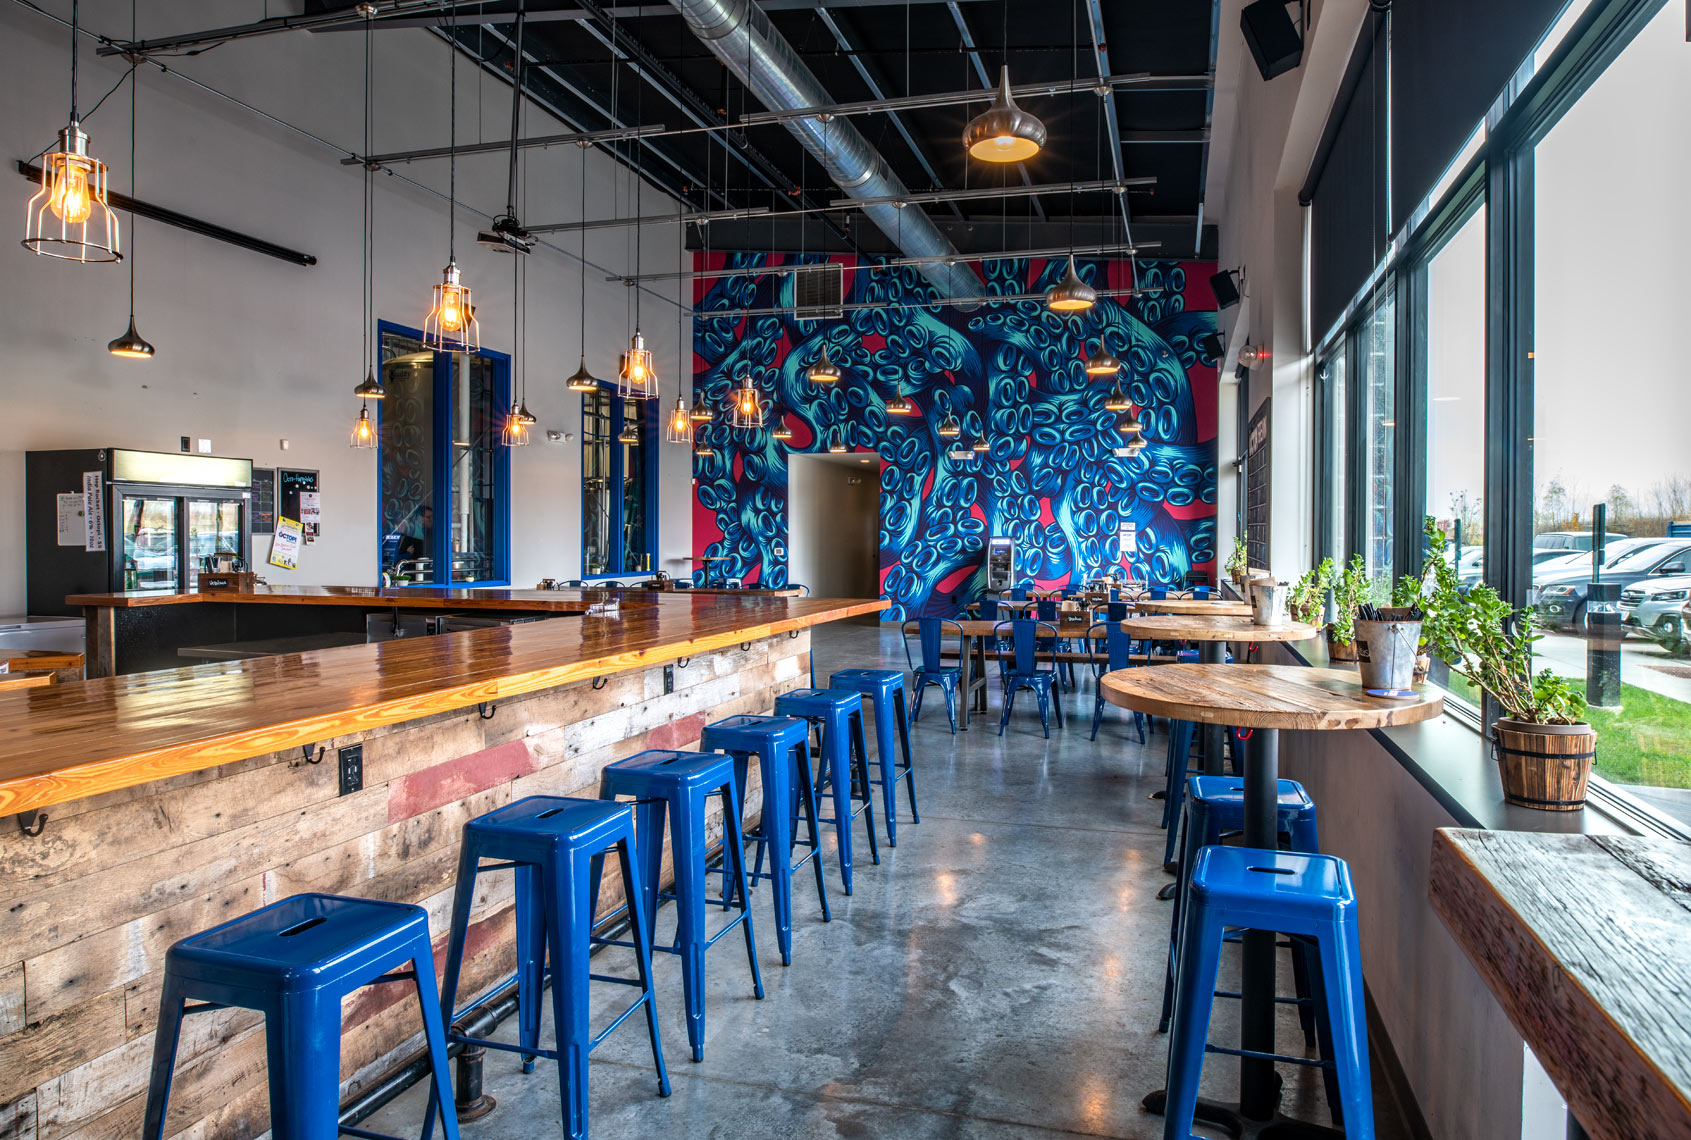 Commercial-Architecture-Interiors-Octopi-Brewery